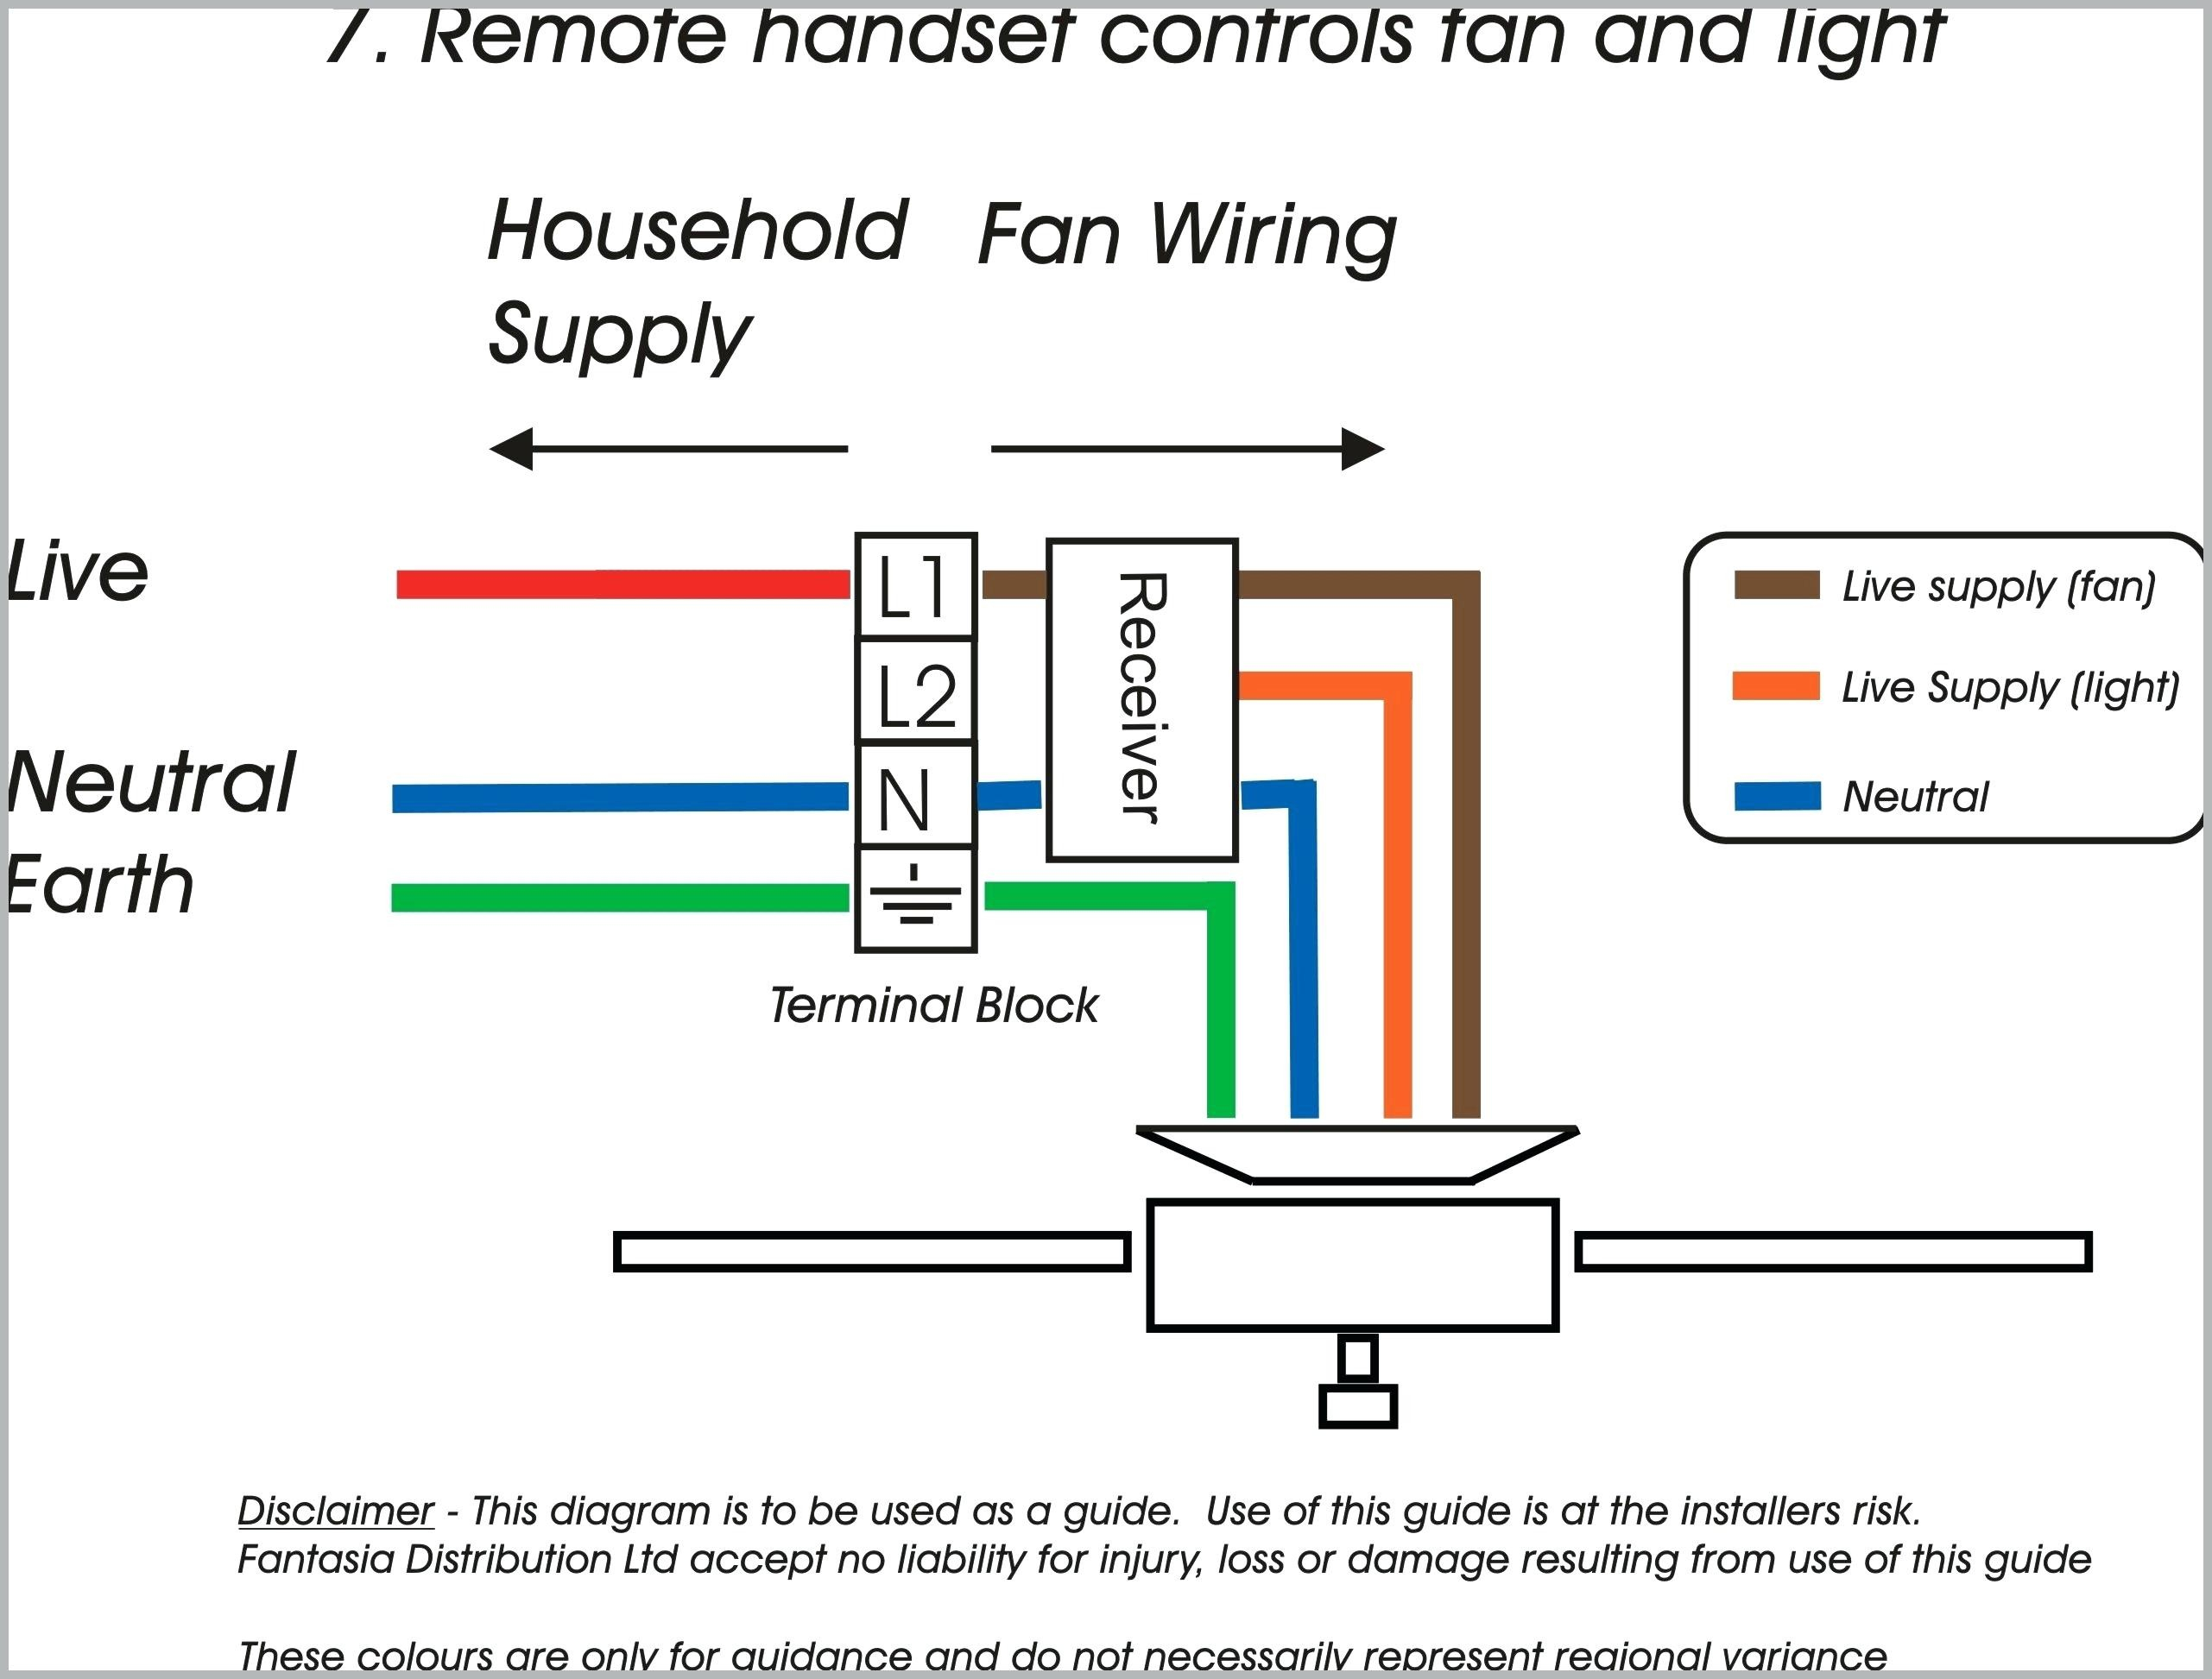 hampton bay ceiling fan wiring diagram with remote Collection-Hampton Bay Ceiling Fan Switch Wiring Diagram Wiring Diagram for Hunter Fan with Light Free Download 2-q